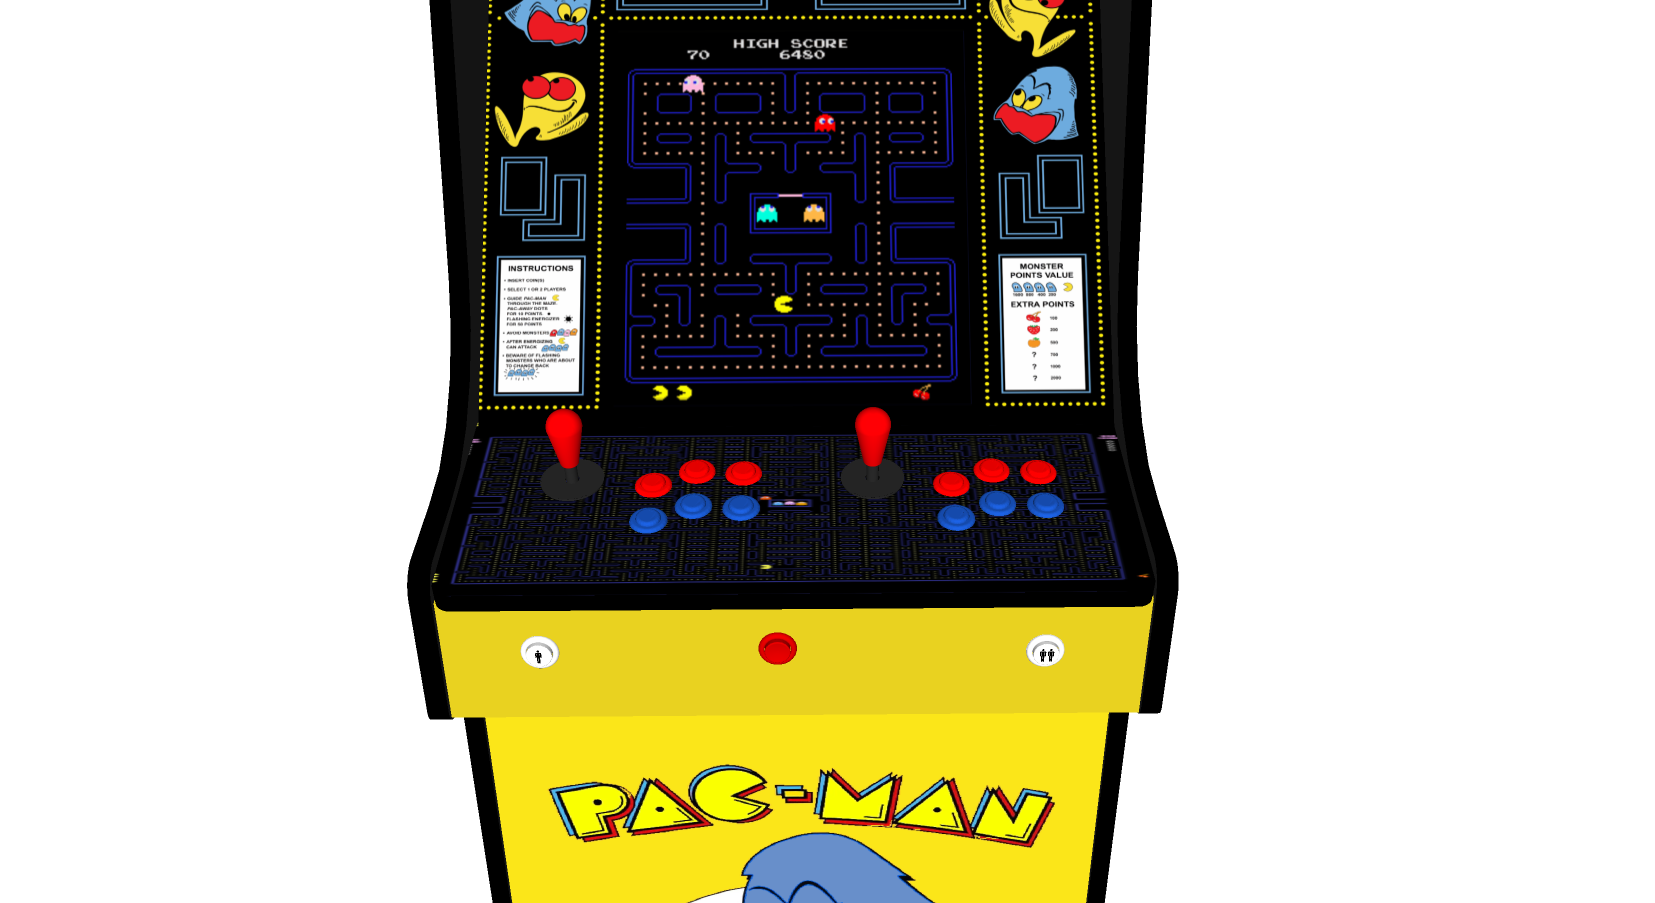 Classic Upright Arcade Machine - Original PacMan Theme - Buttons v2